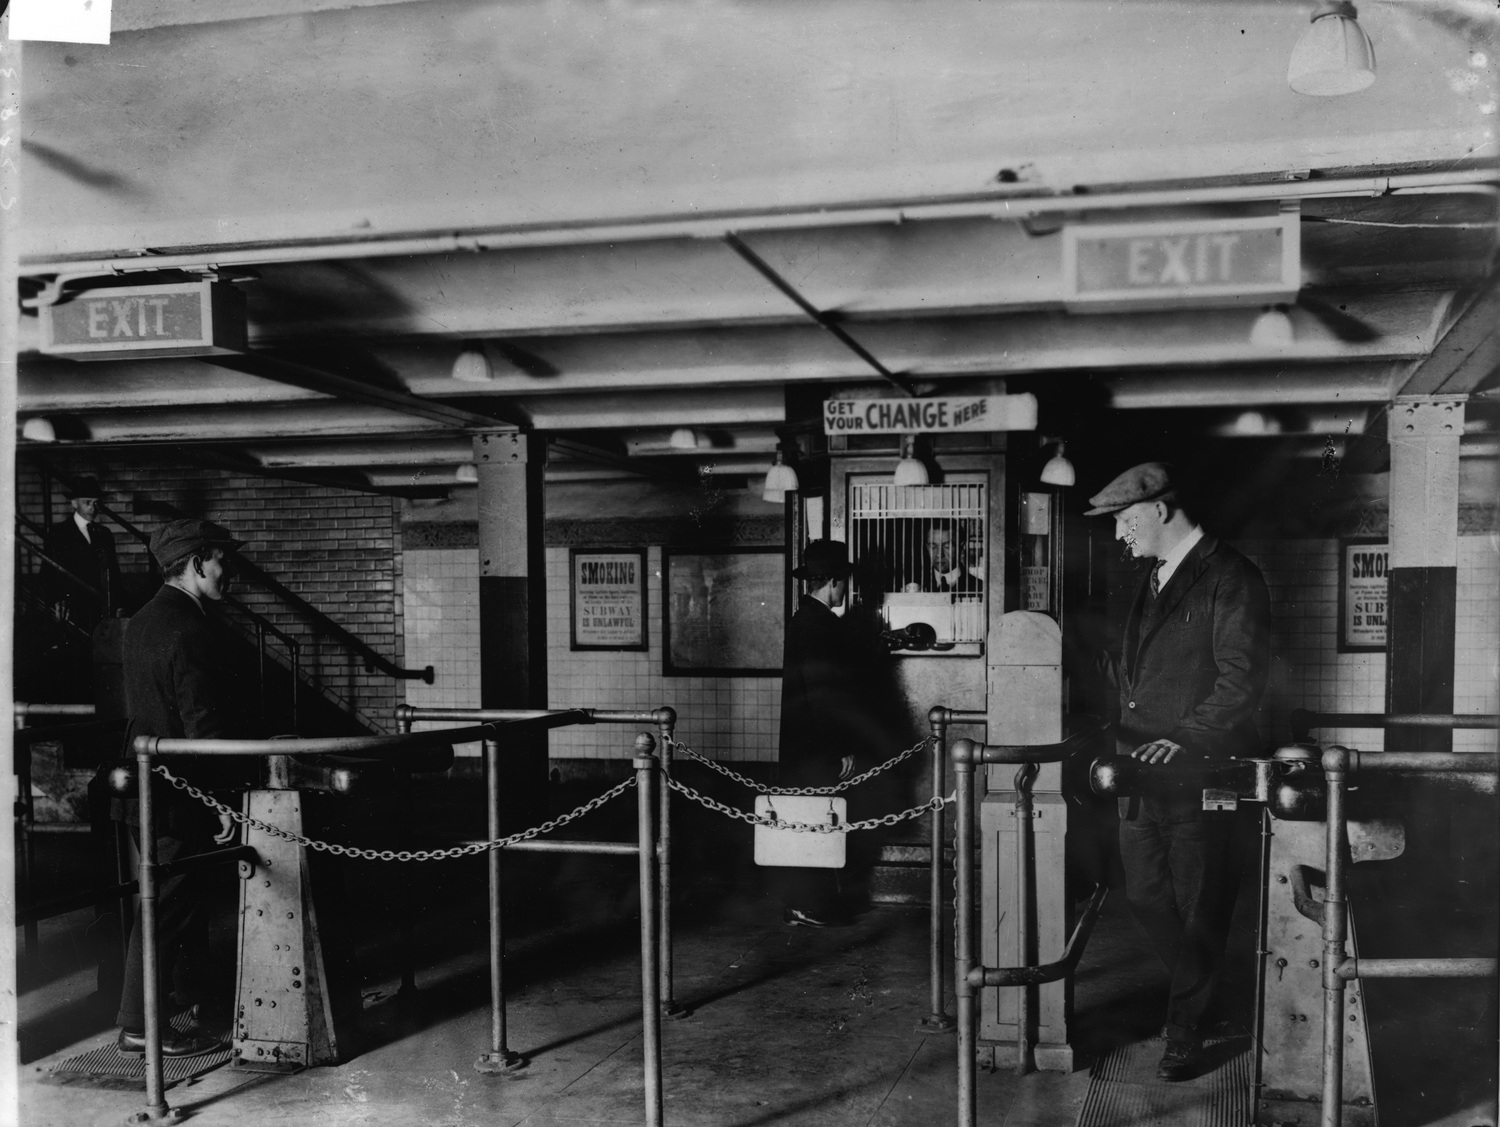 A man gets change in nickels from a change booth operator so he can pass through the new nickel-operated turnstiles which have replaced the ticket and ticket-chopper (a man who manually cut tickets at the gate) system in the New York City subway, early 1920s. The move allowed subway companies to reduce operating costs by drastically reducing personnel.